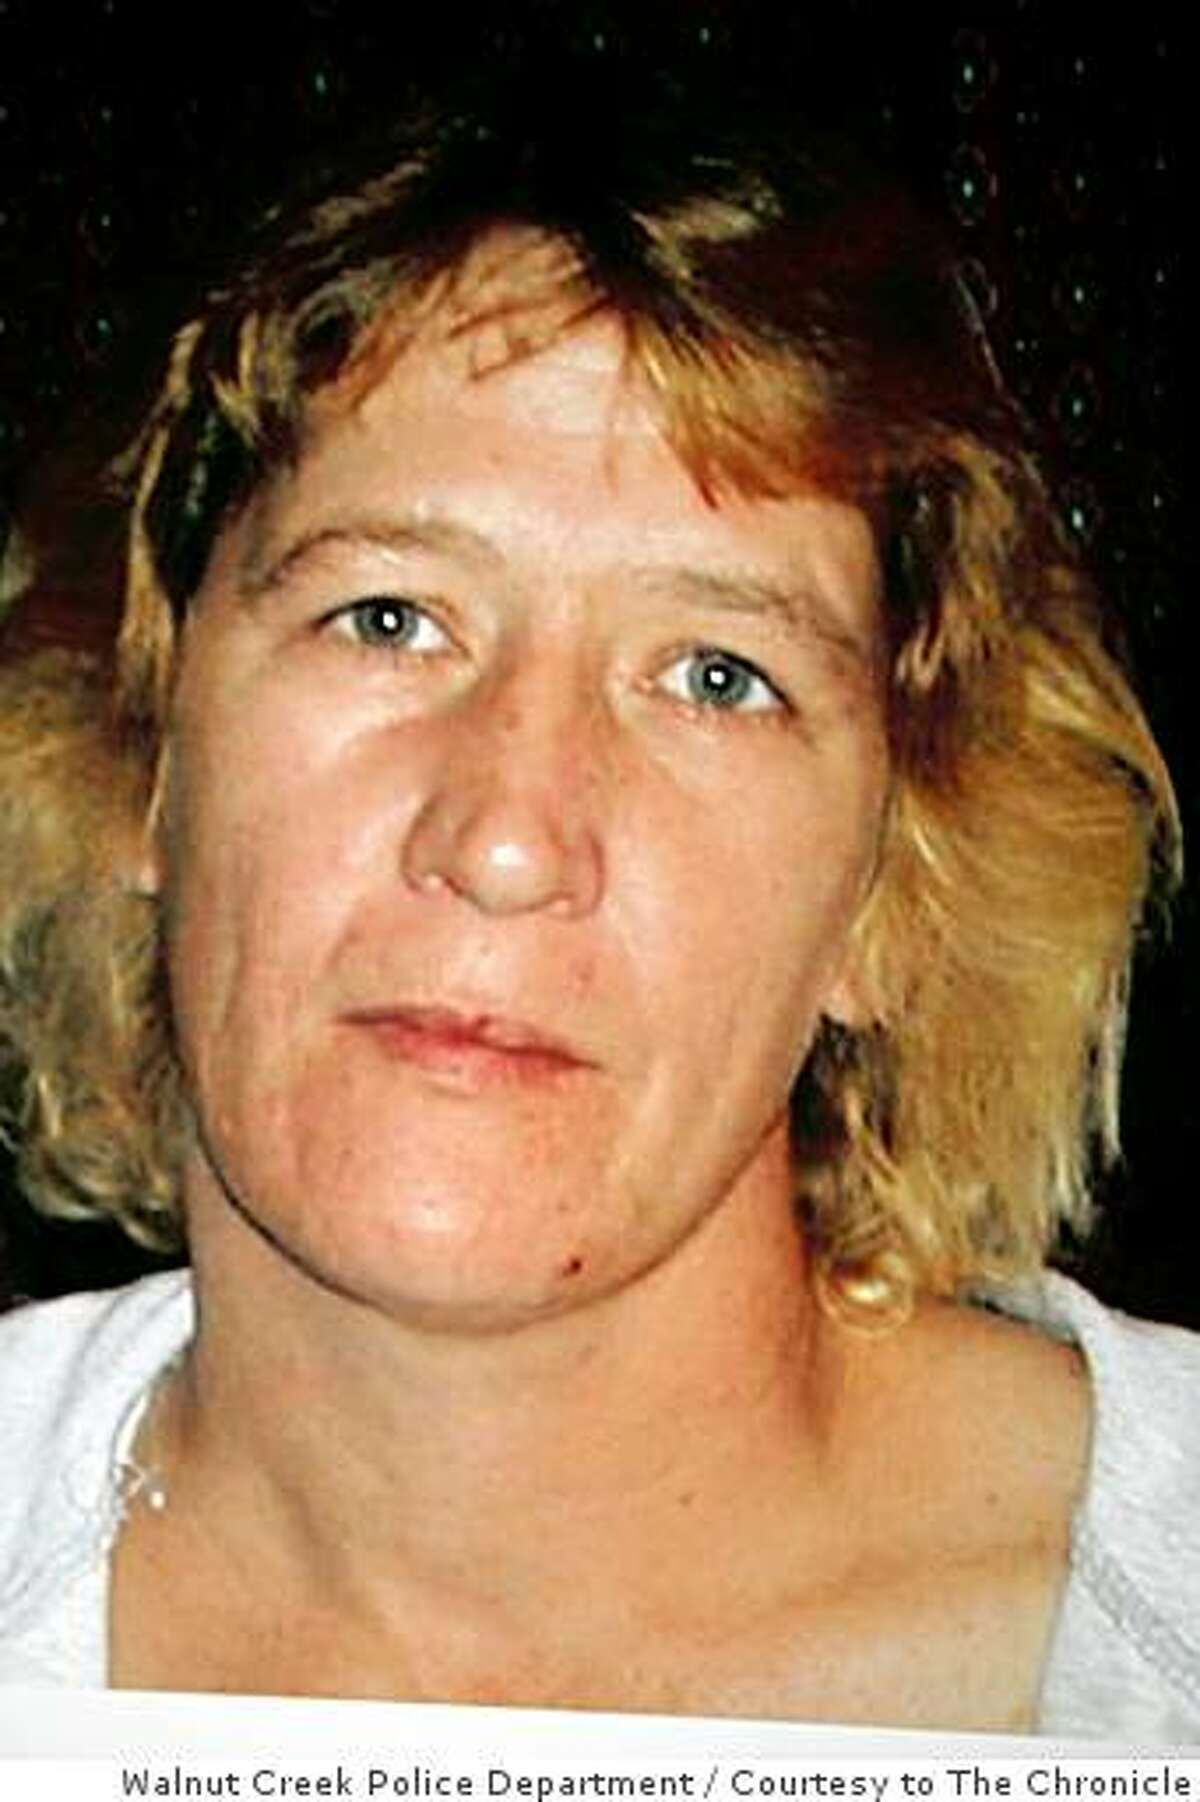 This is an undated photo of Catherine Kuntz who has been named as a suspect in the shooting death of San Francisco Police officer Lester Garnier on July 11, 1988.